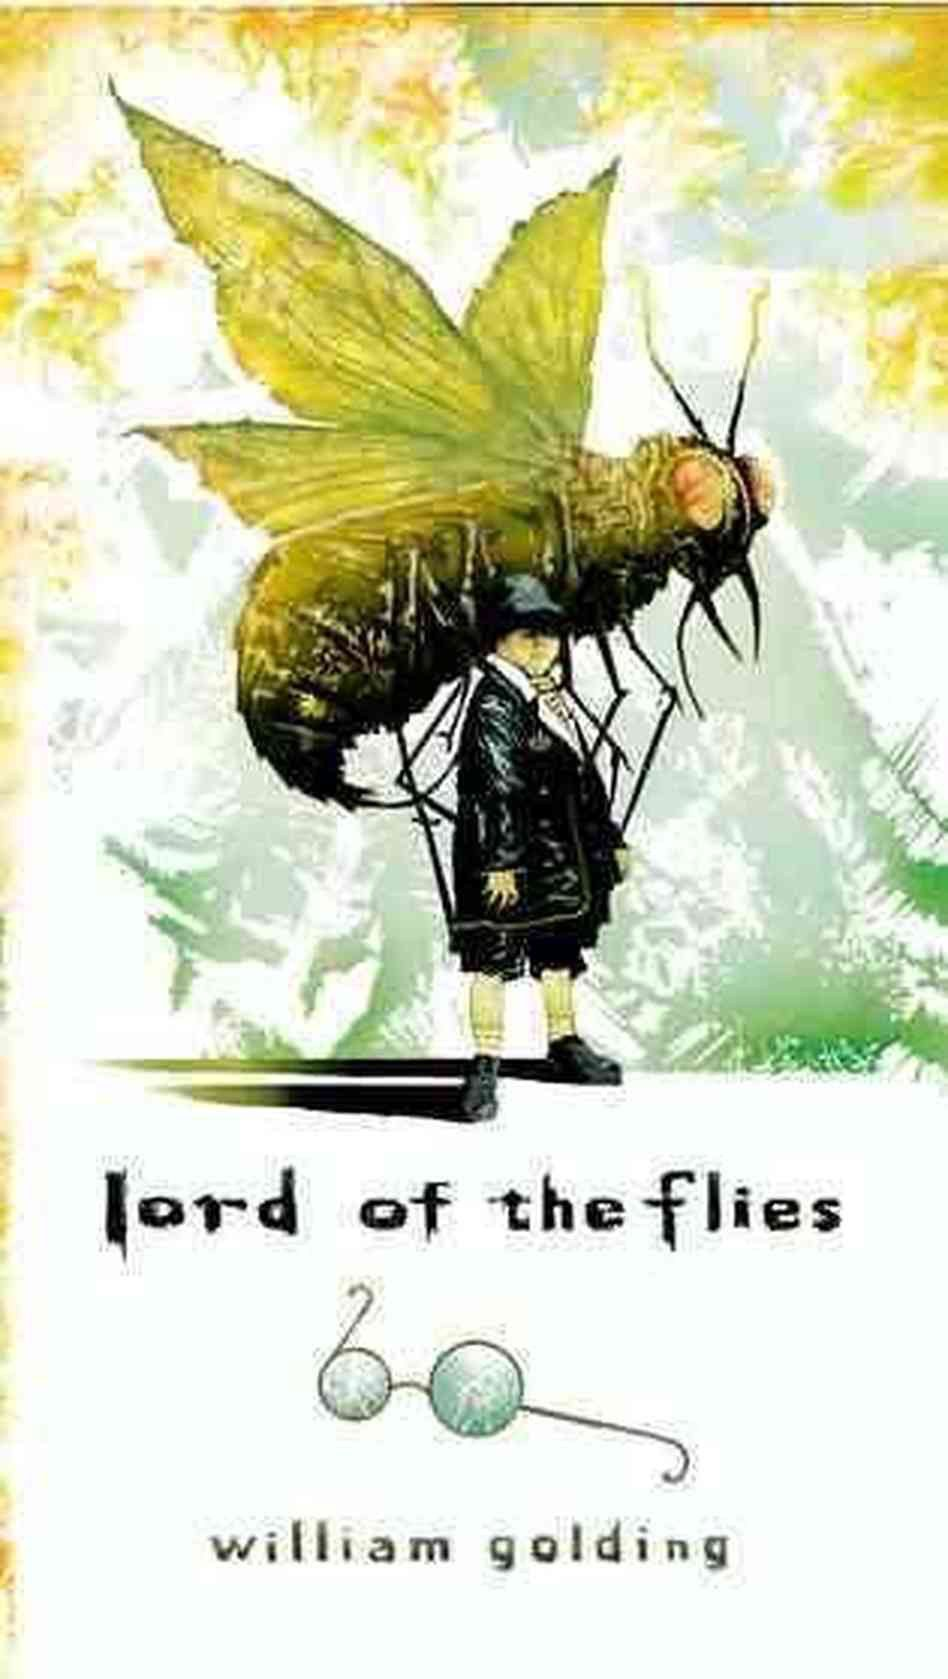 a literary analysis of the savages in lord of the flies by william golding Golding's lord of the flies (essay sample) william golding uses golding in his novel lord of the flies reveals the savage extent and uncivilized society.